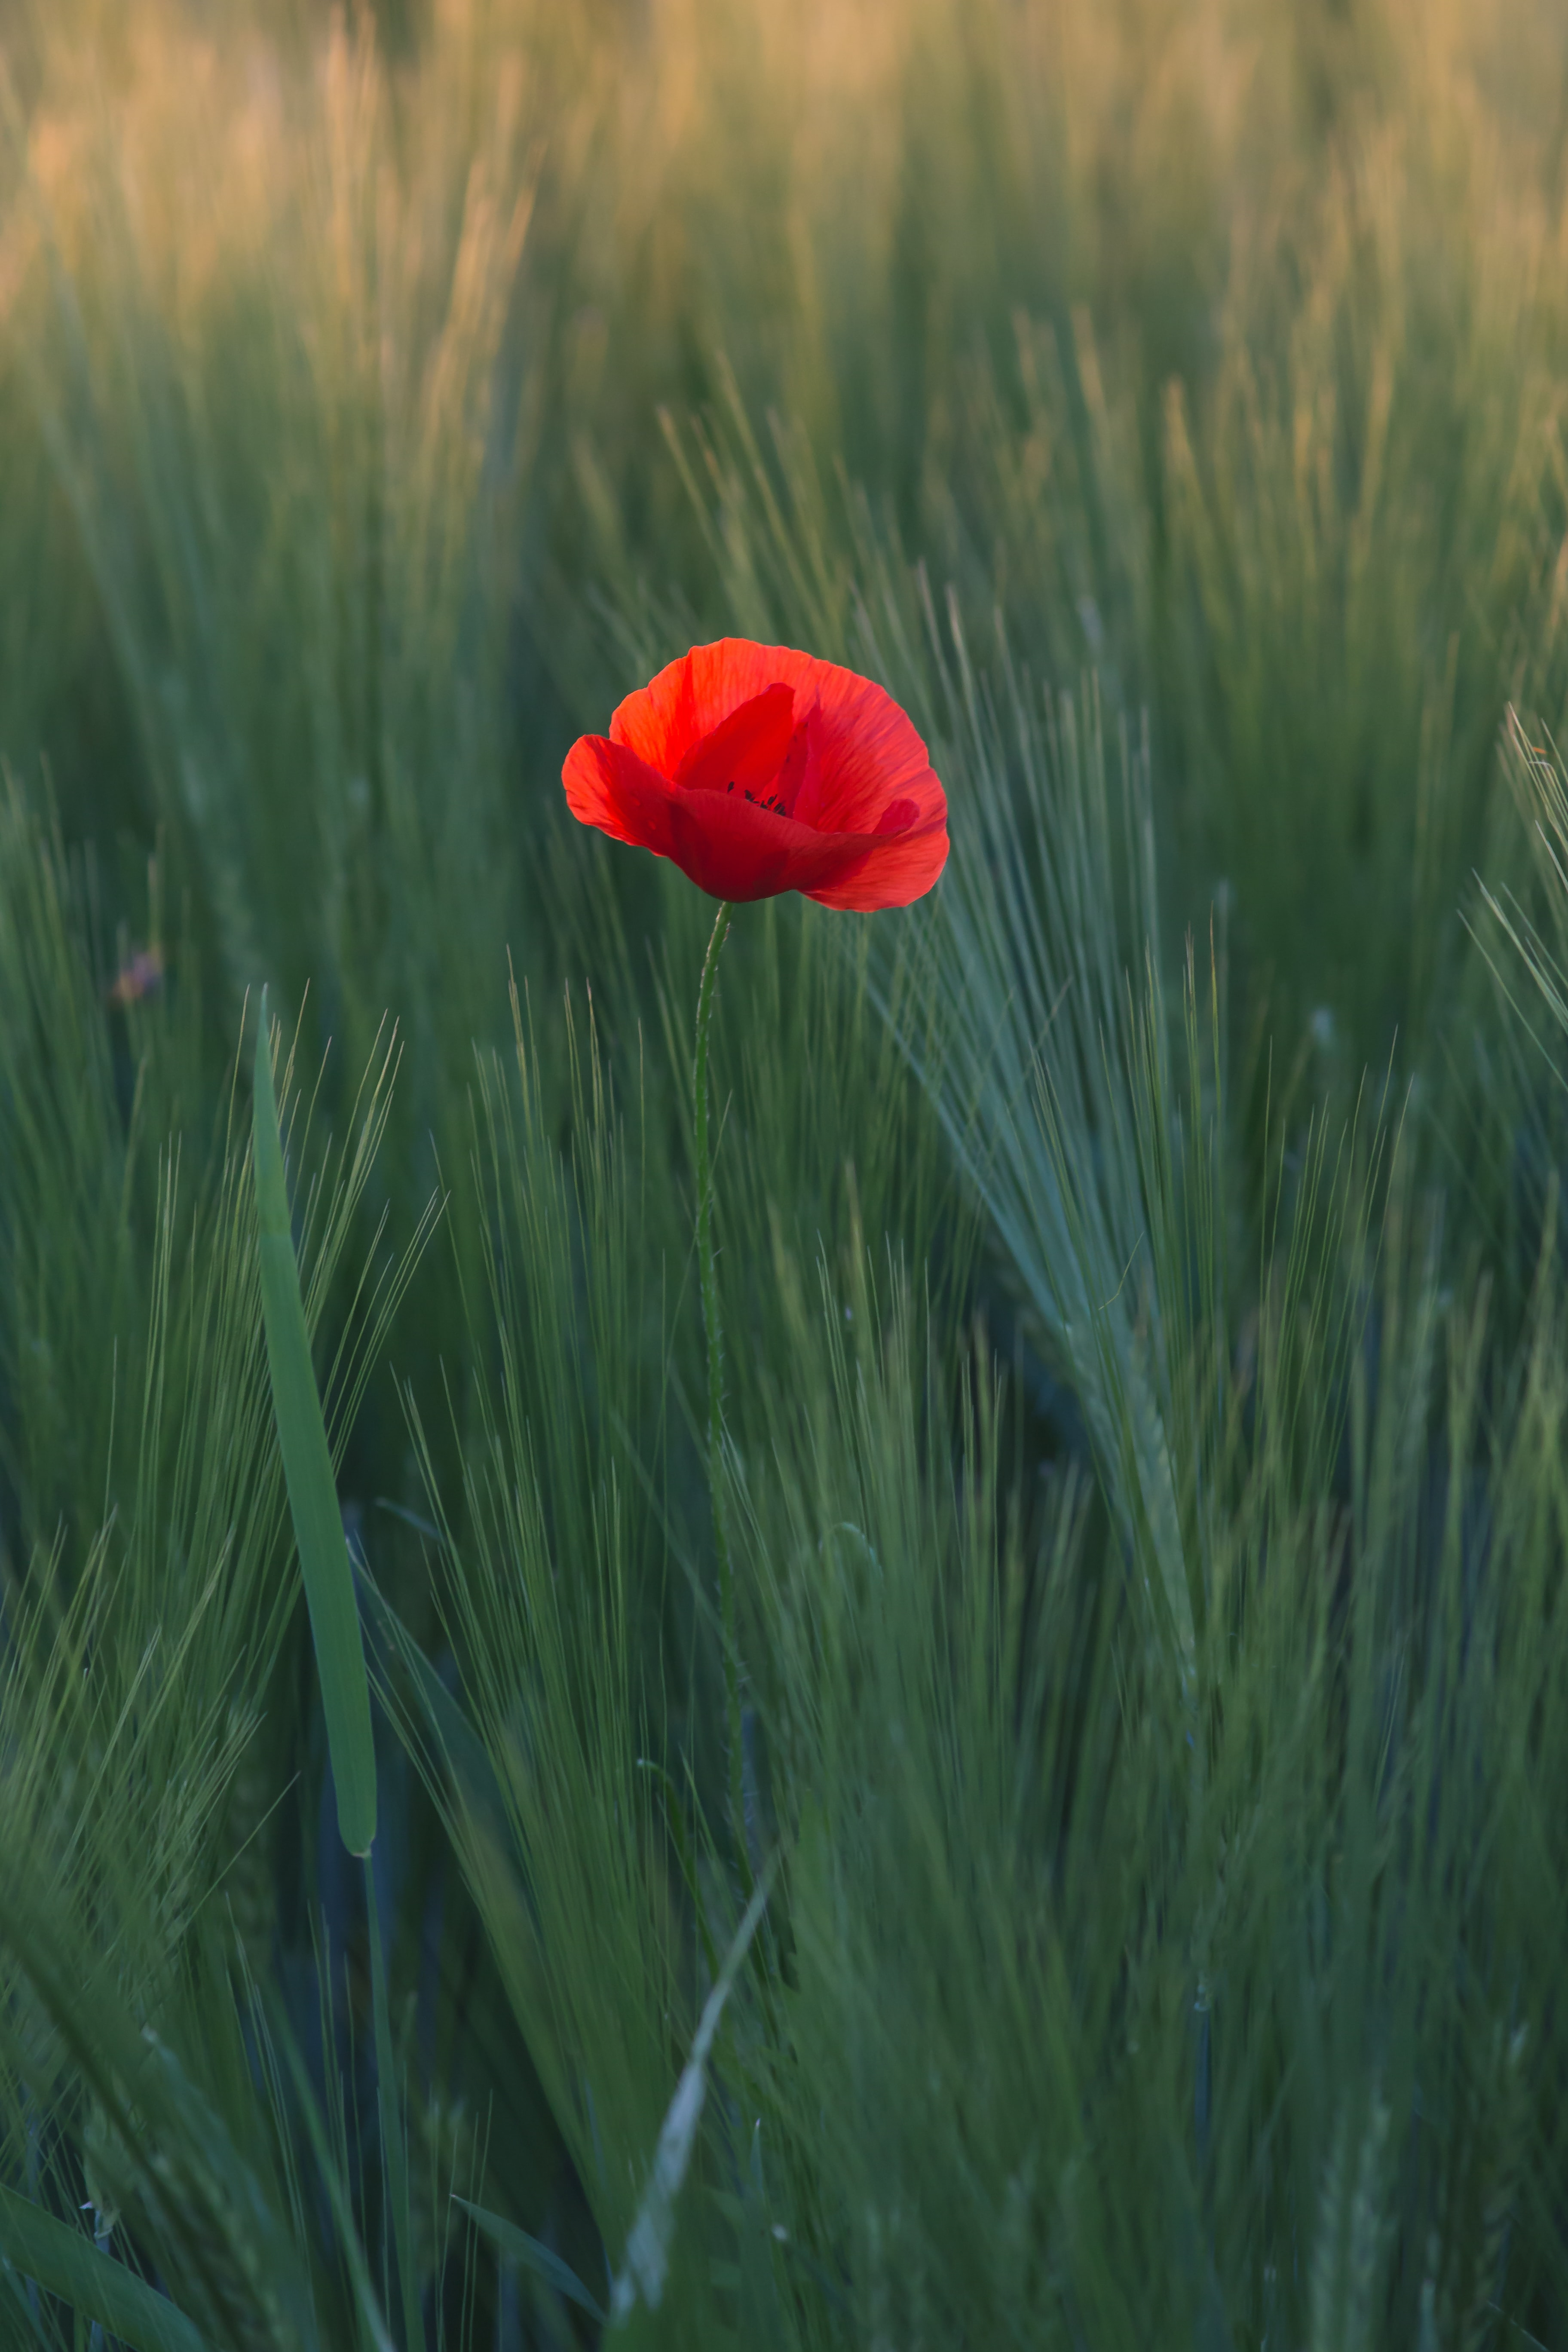 red flower in the middle of green grasses